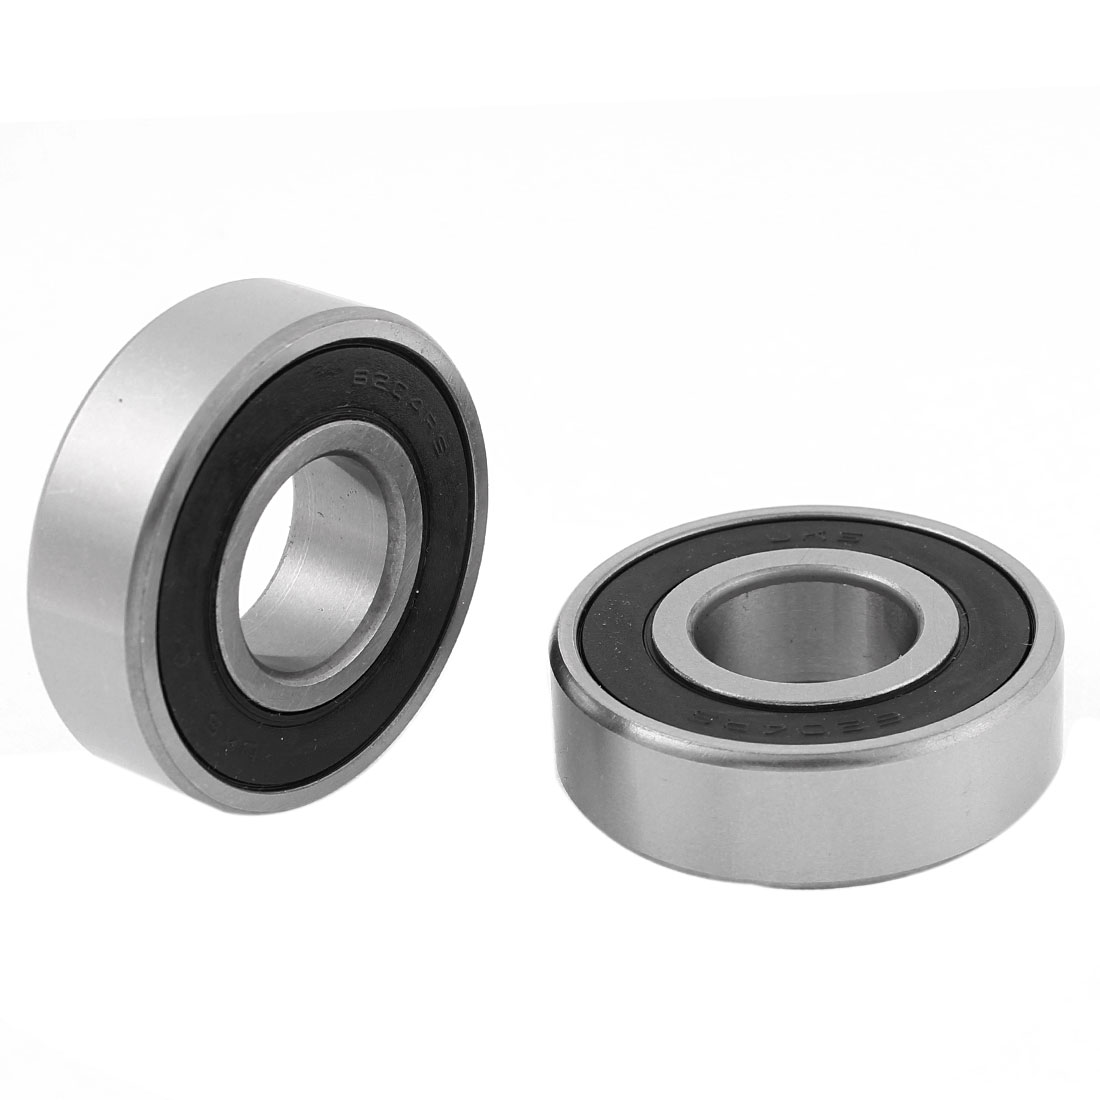 2pcs 6204RS Roller-Skating Deep Groove Ball Bearing 14mmx47mmx20mm for Electric Motor